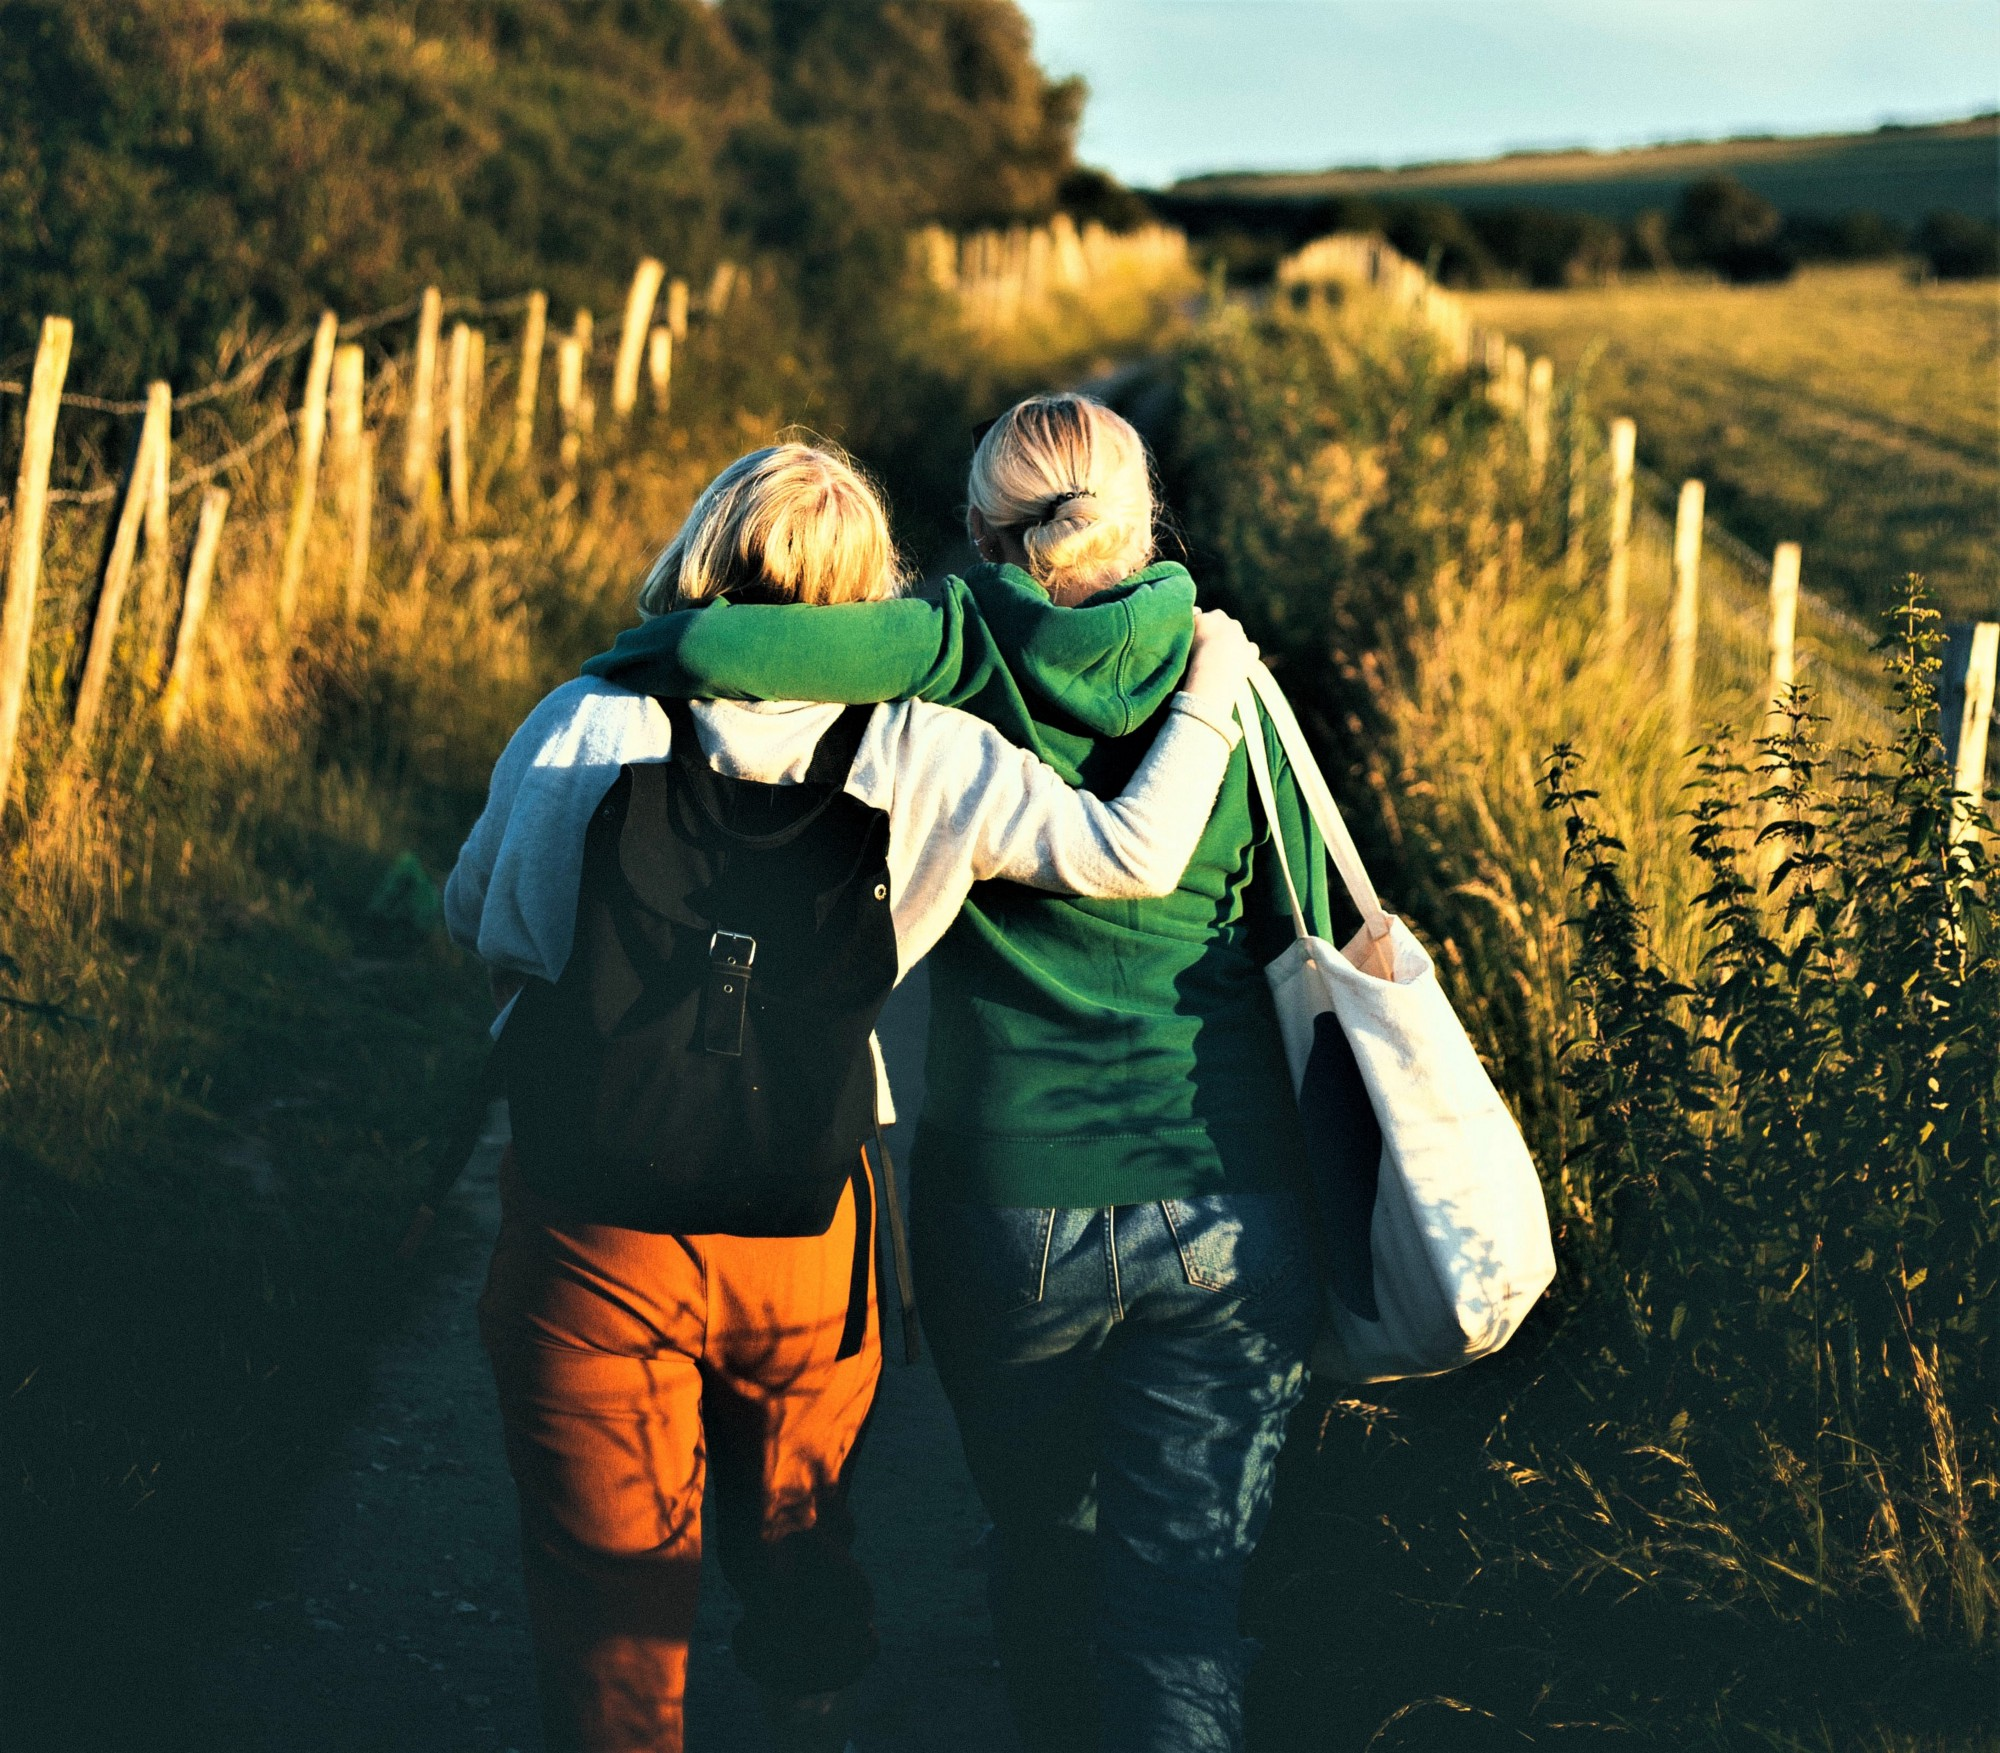 back view of two people with blonde hair wearing backpacks walking along a country road